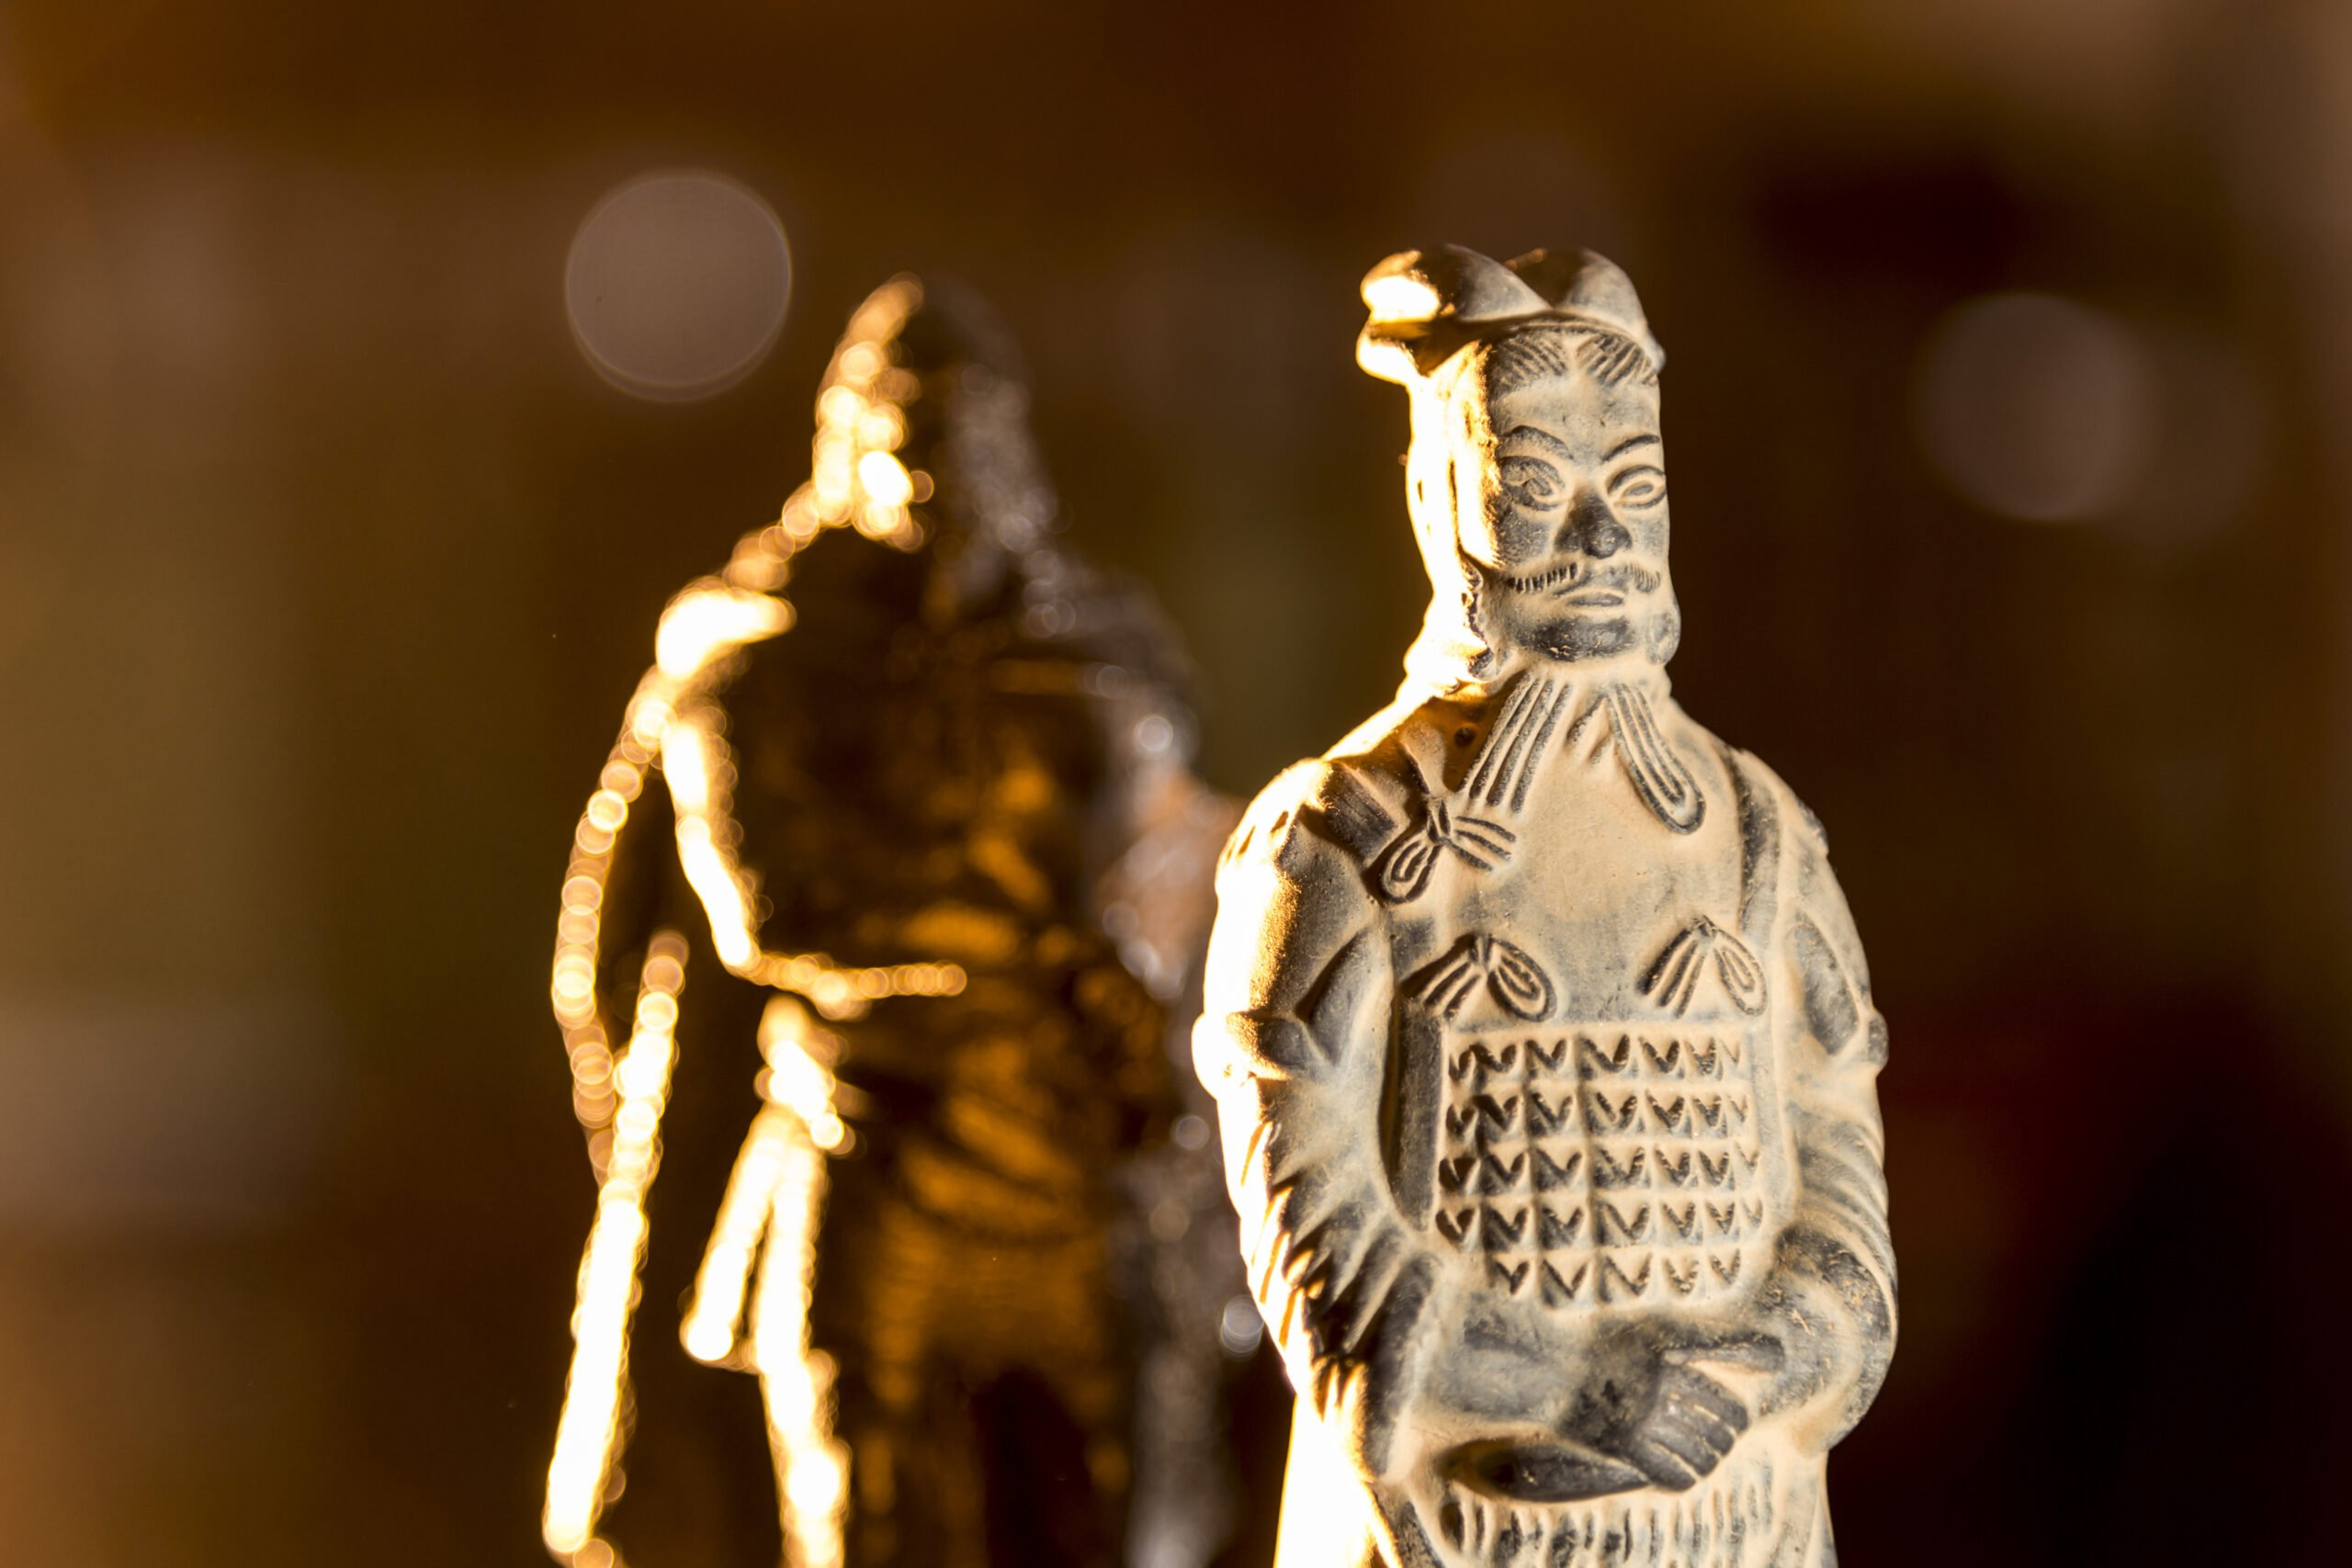 Explore The Amazing Terracotta Soldiers In Our China Private Impression 14 Day Package